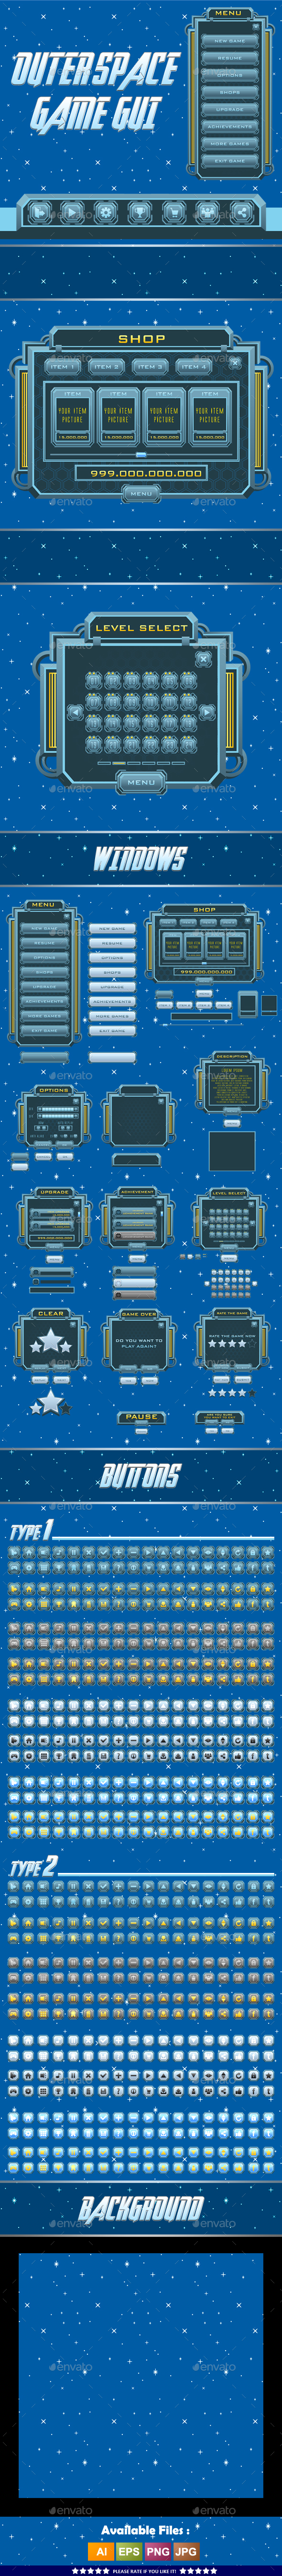 Space Game Kit - Sprites, Backgrounds, Tilesets and GUI (Game Kits)